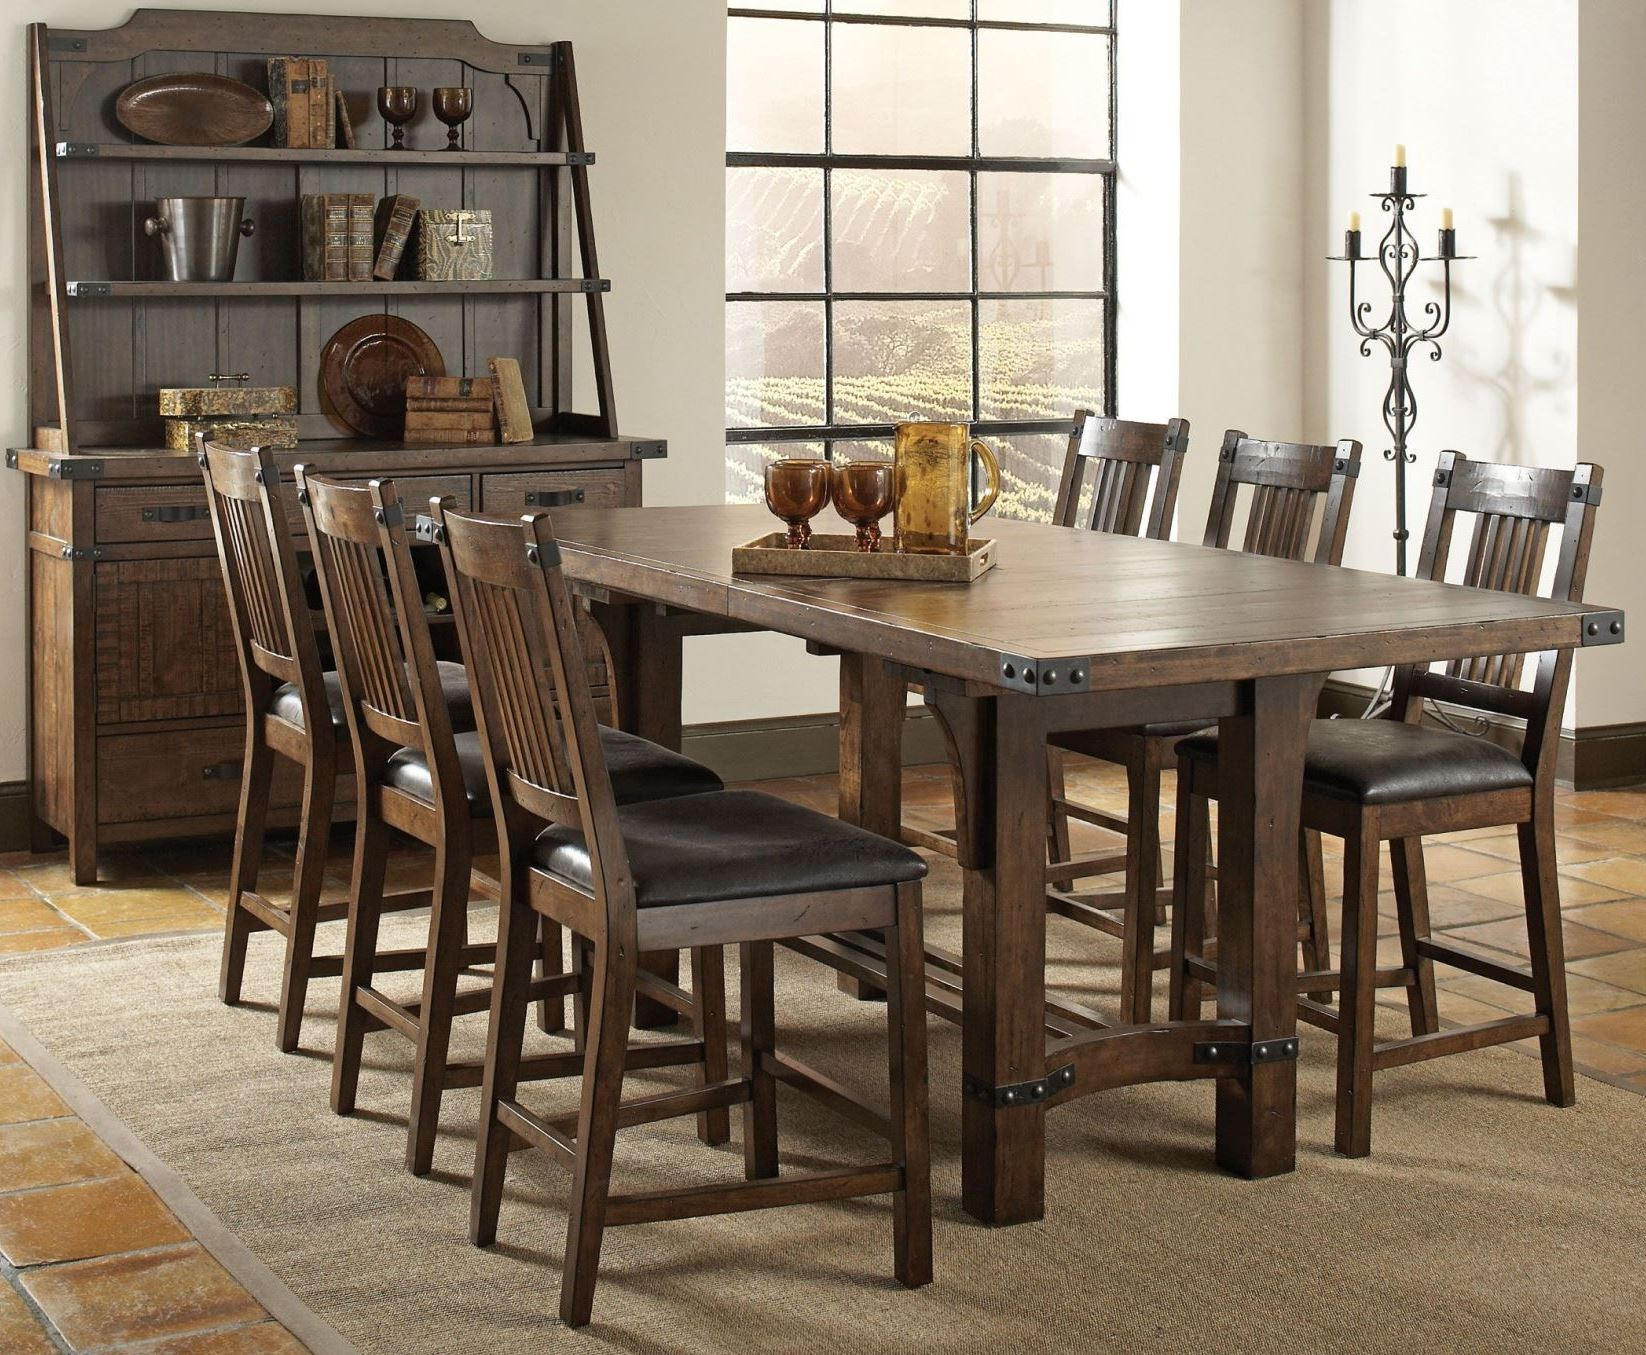 padima distressed cognac extendable counter height dining room set